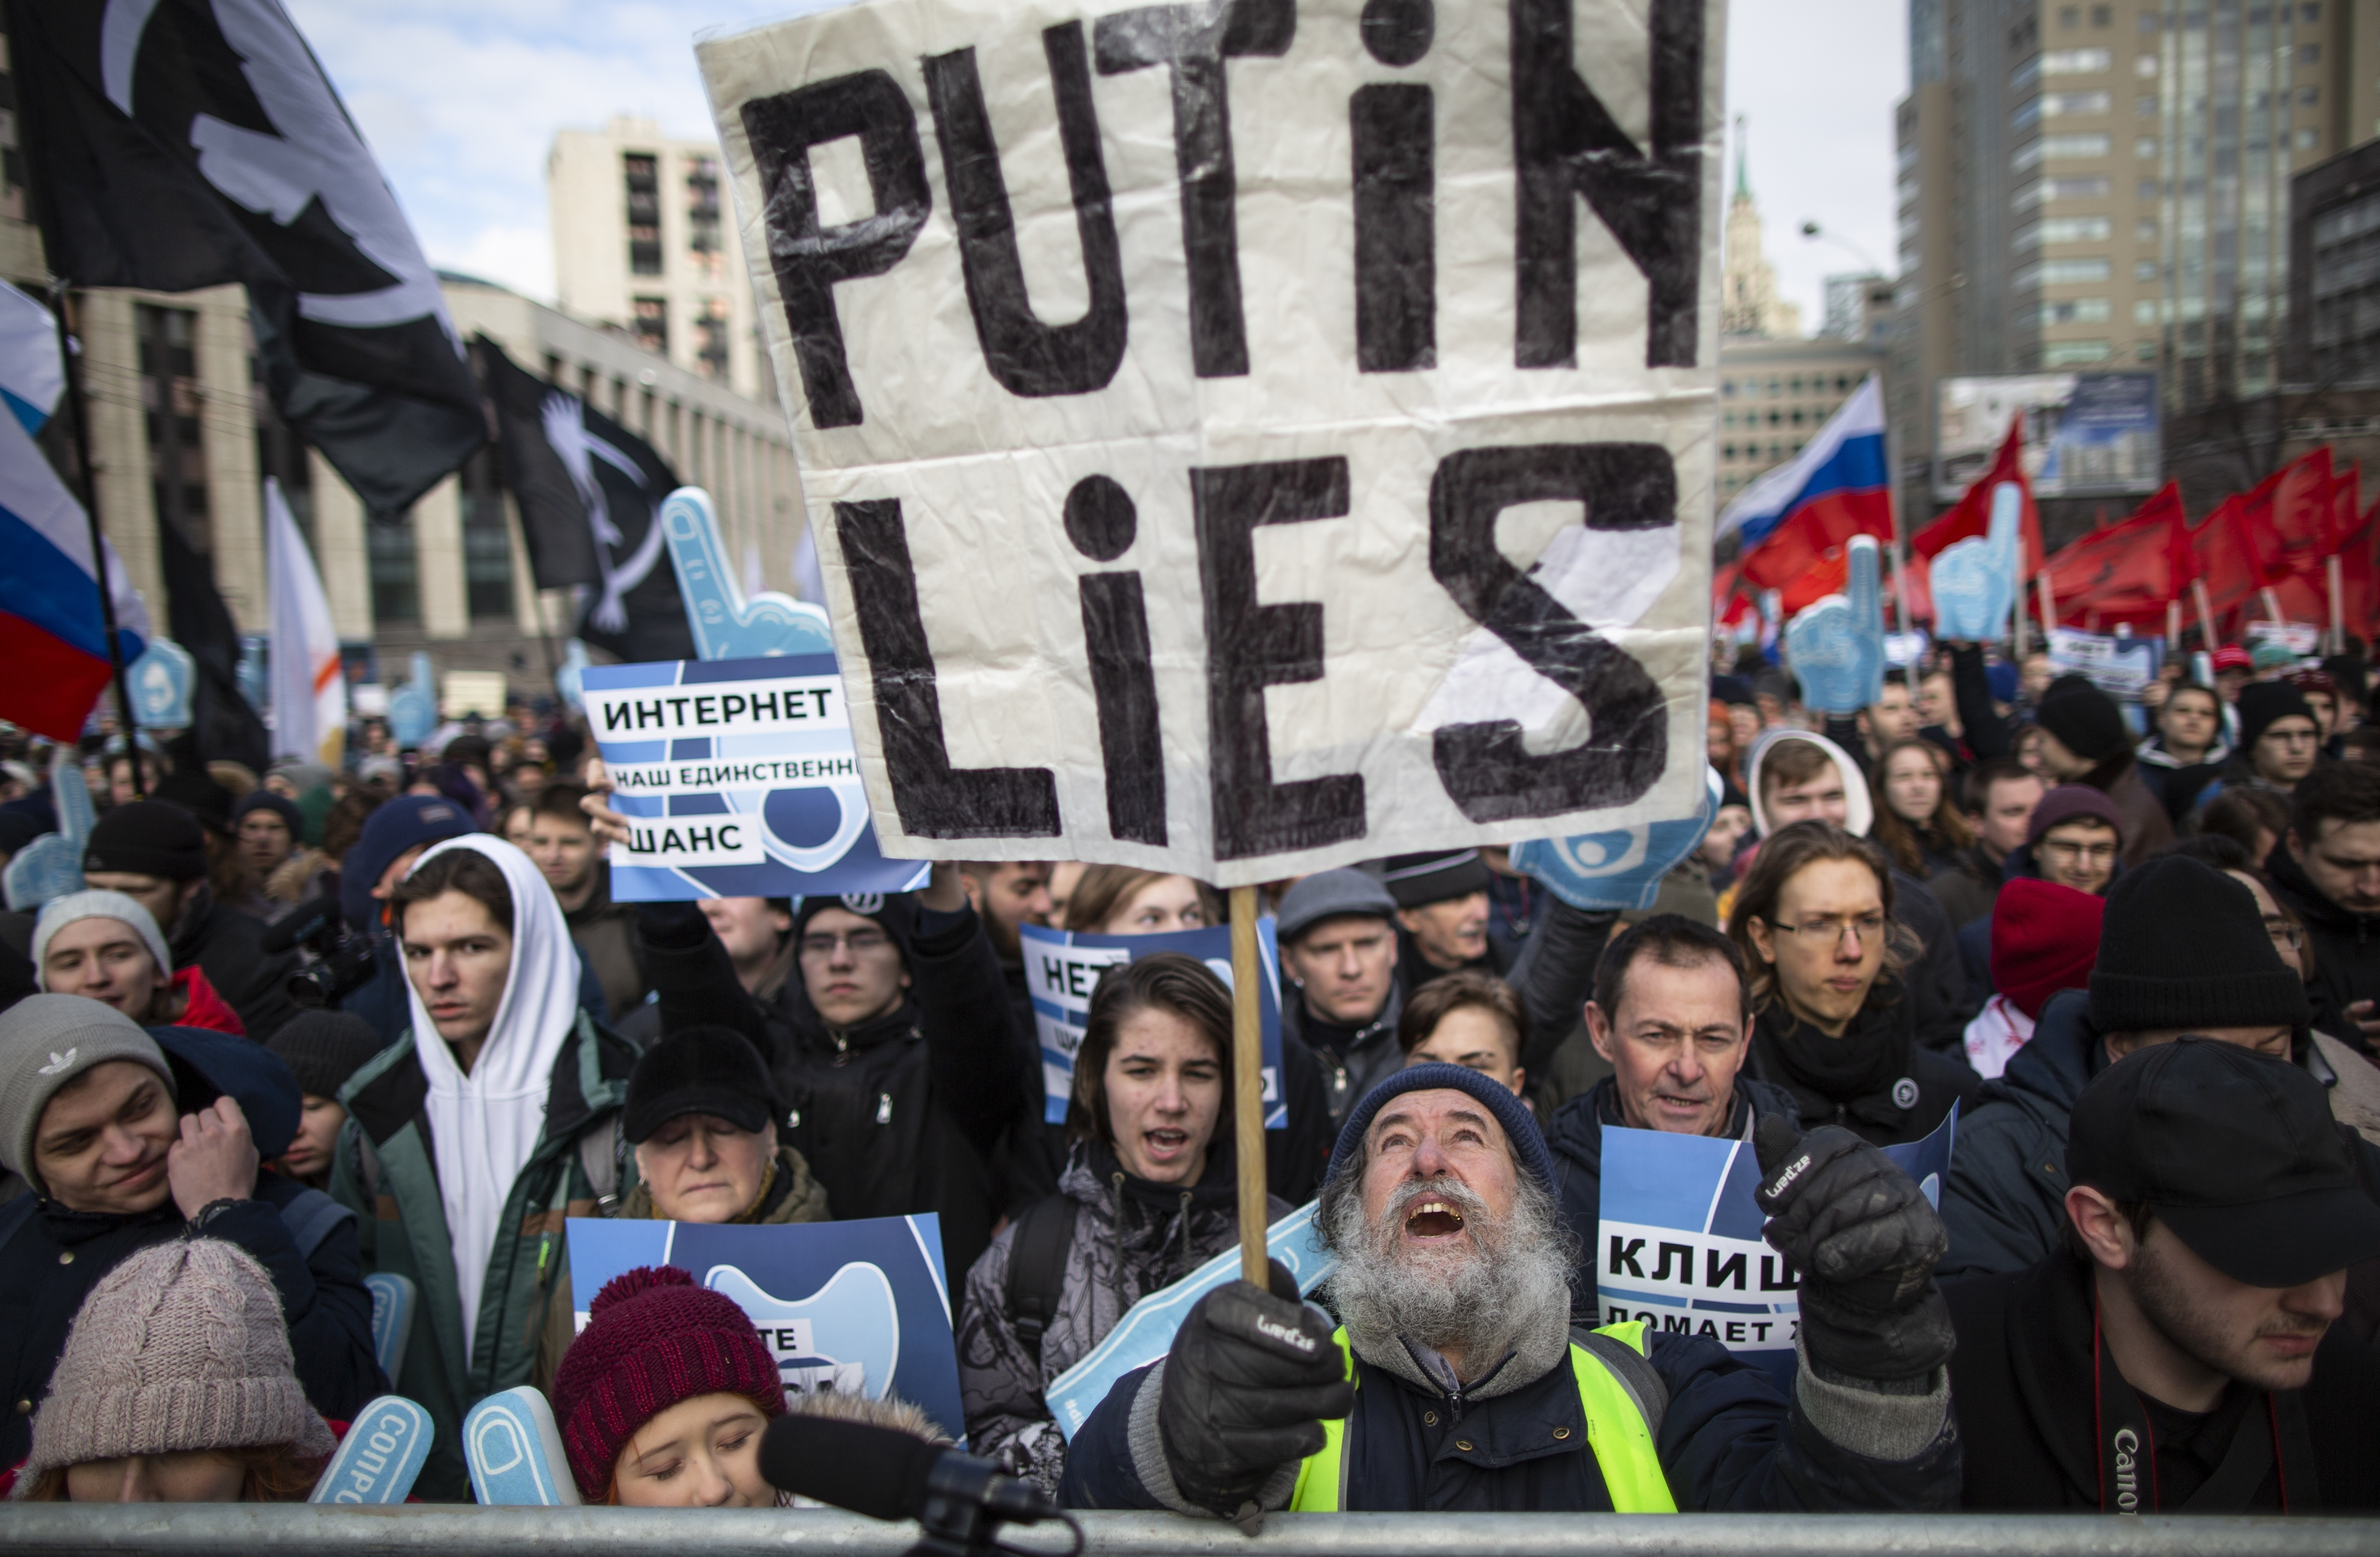 Demonstrators attend the Free Internet rally in response to a bill making its way through parliament calling for all internet traffic to be routed through servers in Russia — making VPNs (virtual private networks) ineffective, in Moscow, Russia, Sunday, March 10, 2019. (AP Photo/Alexander Zemlianichenko)